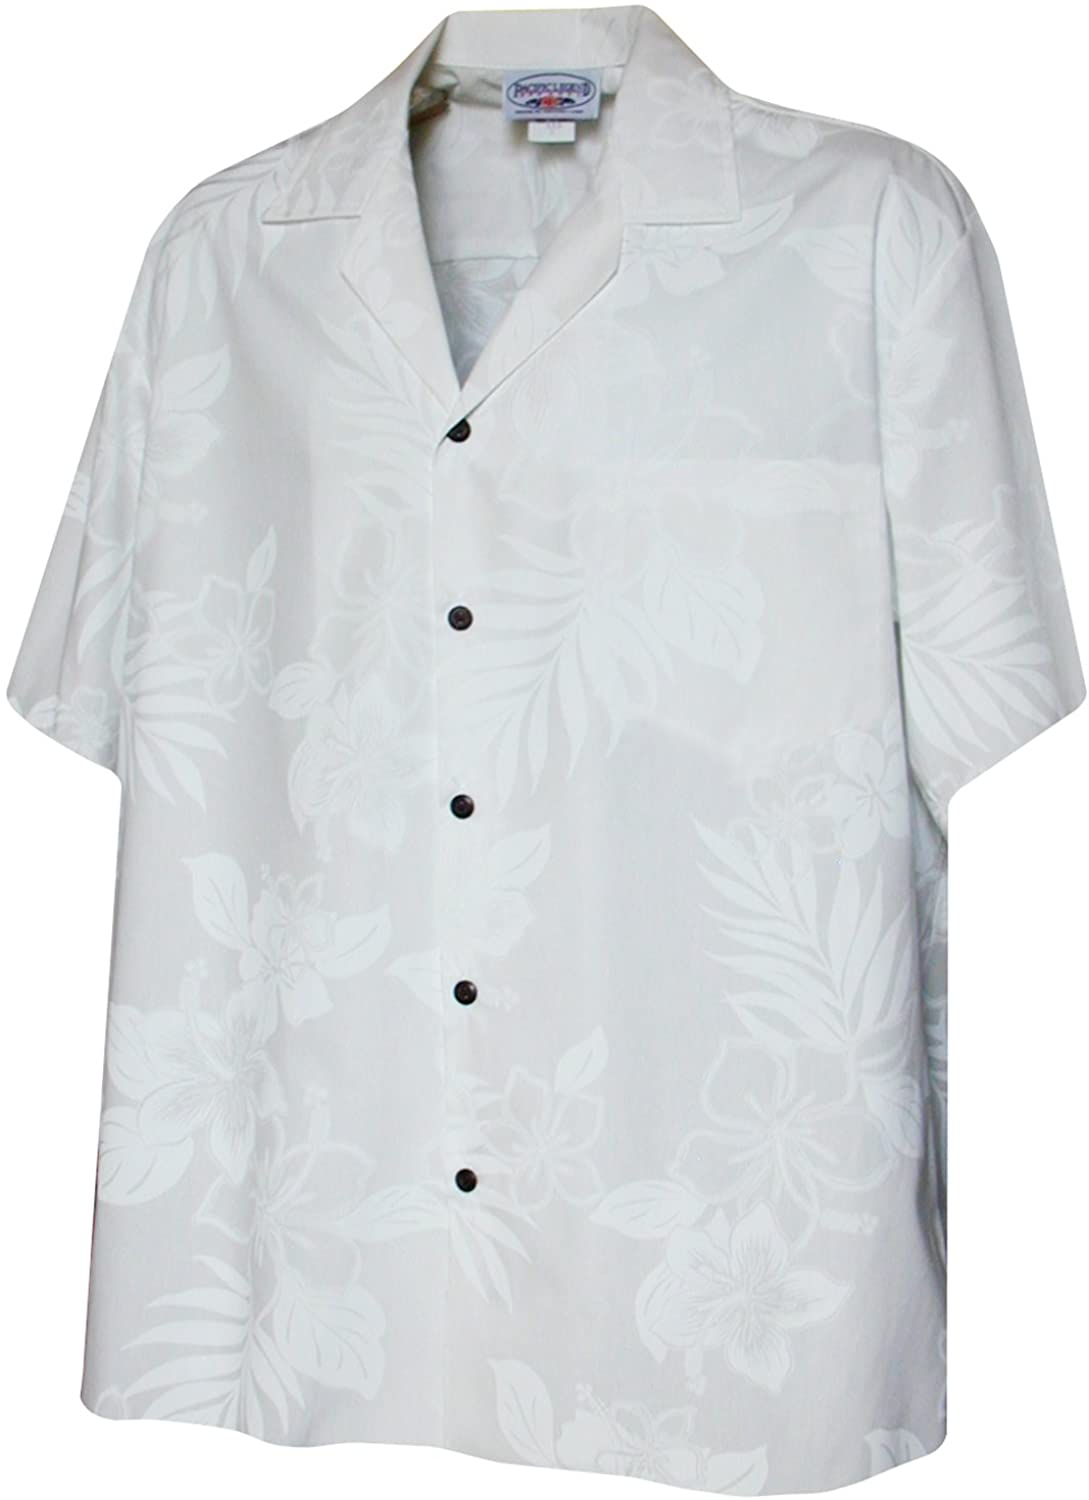 Pacific Legend Boys Classic Hibiscus Fern Shirt